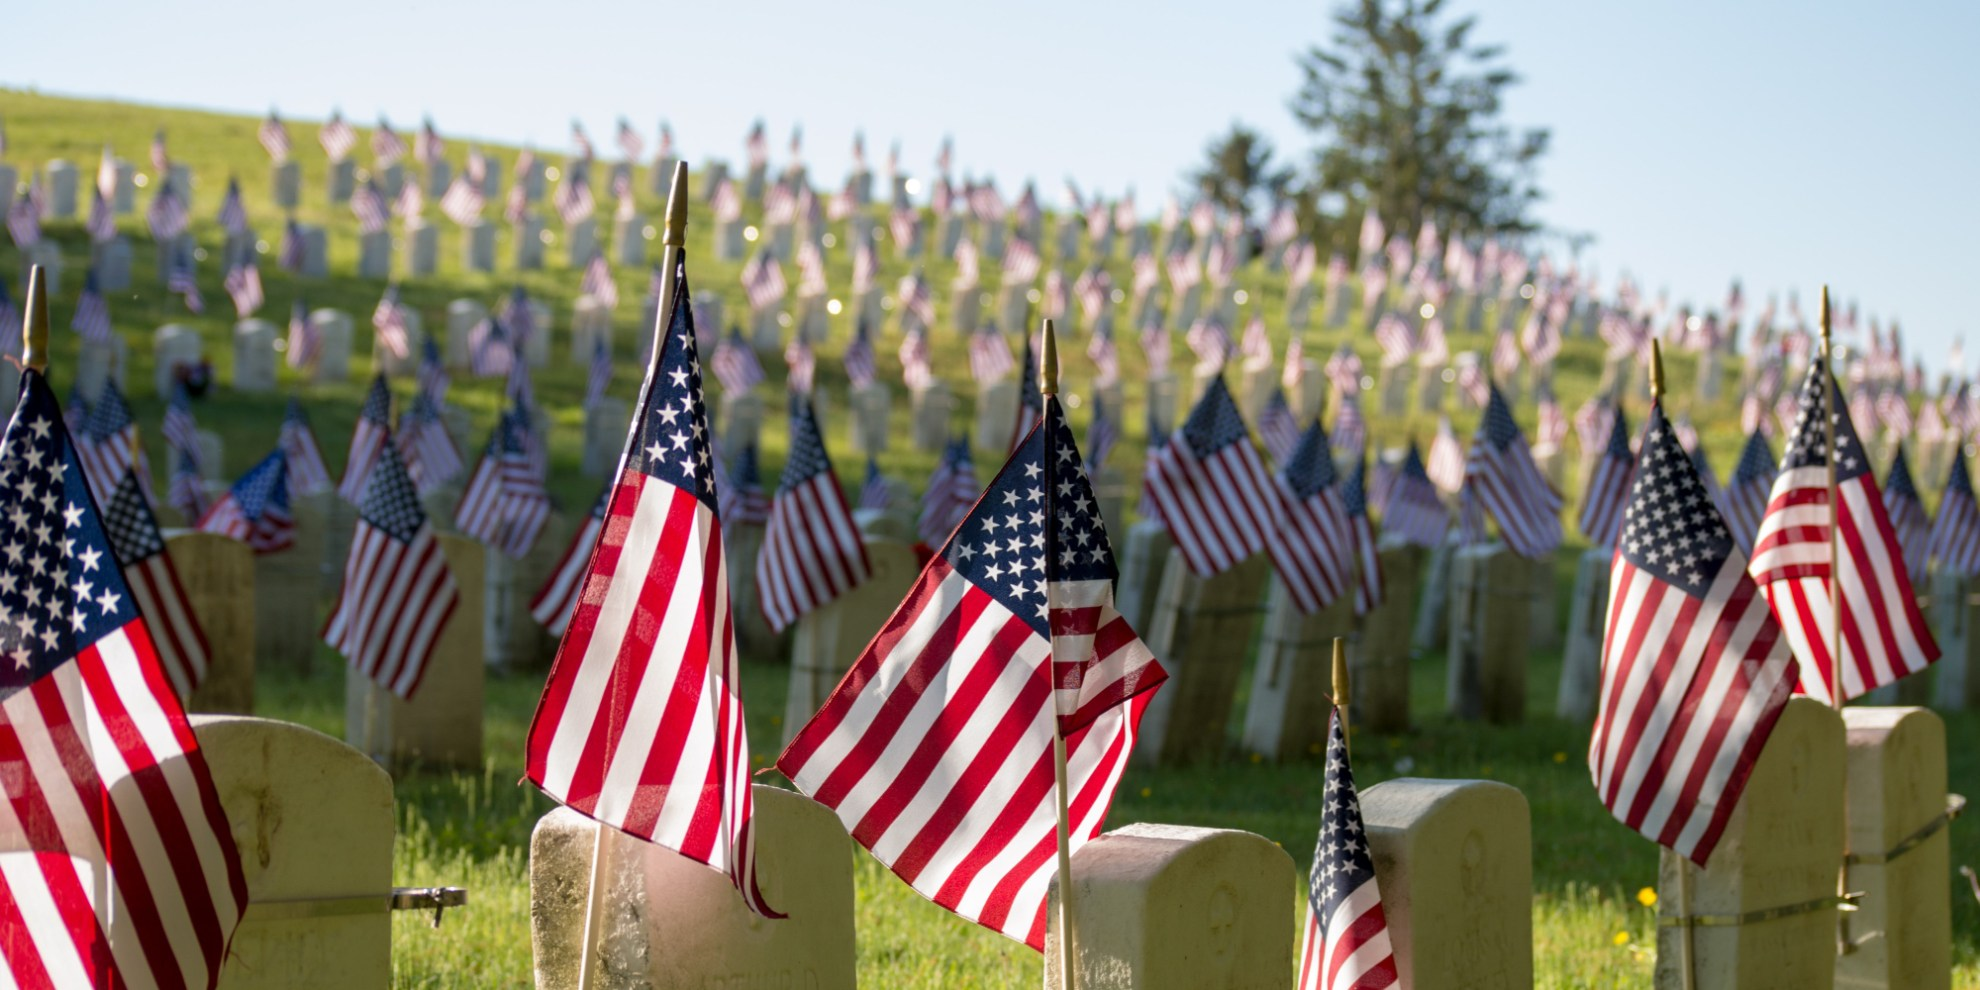 American flags on top of gravestones at cemetery